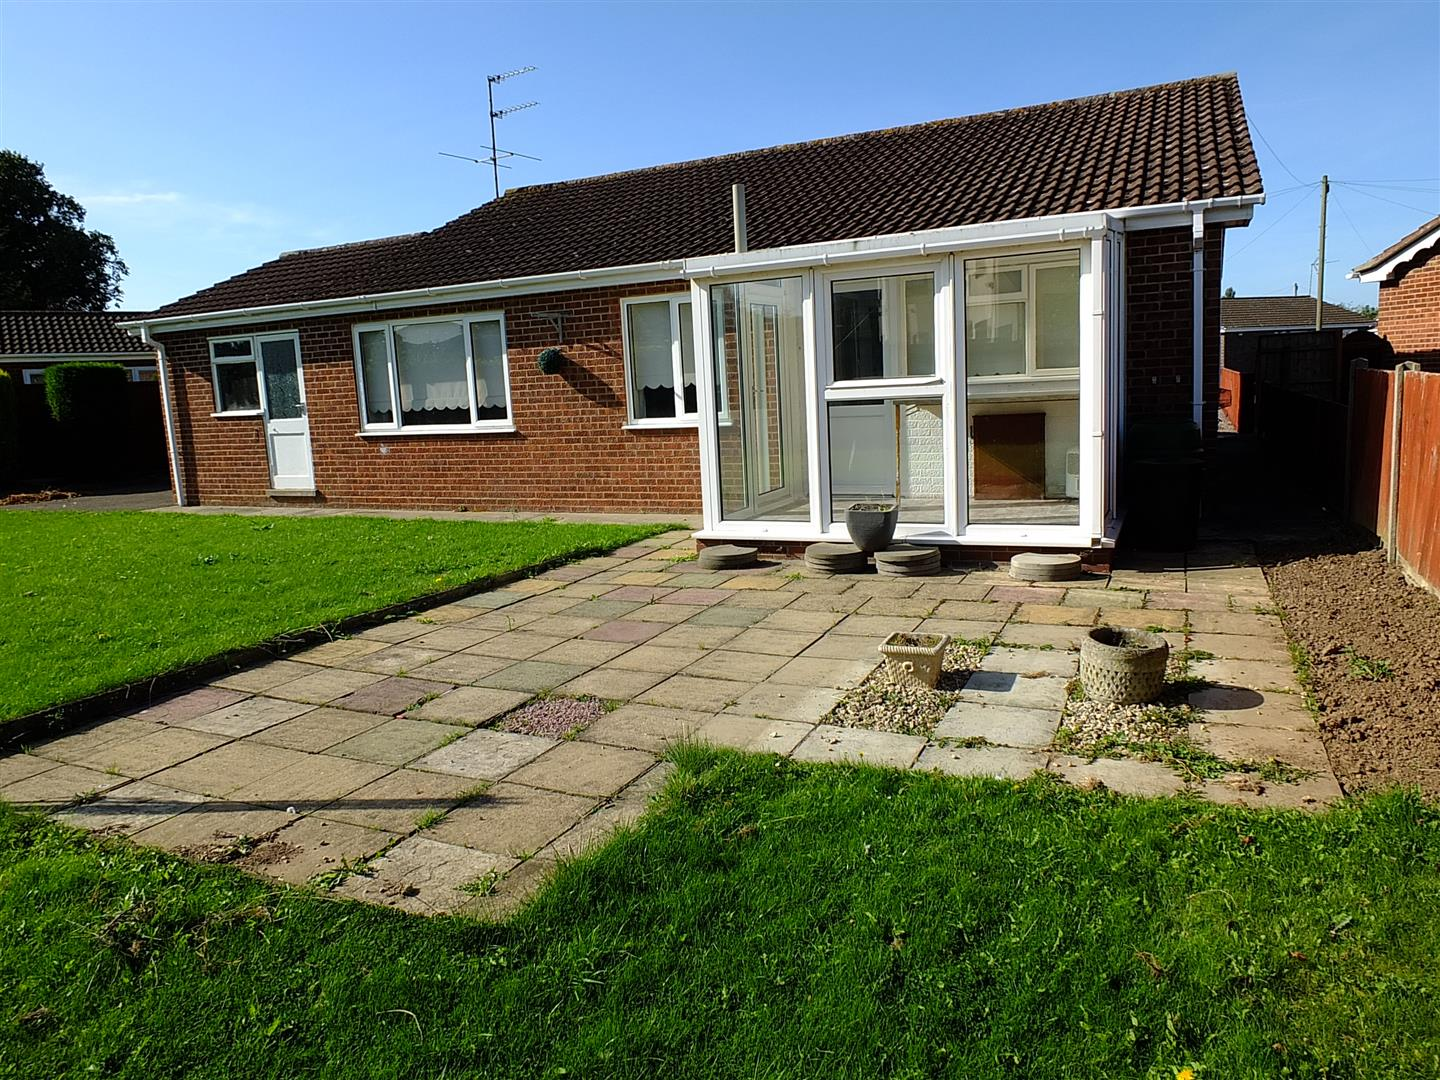 3 bed detached bungalow to rent in Long Sutton Spalding, PE12 9LY 16